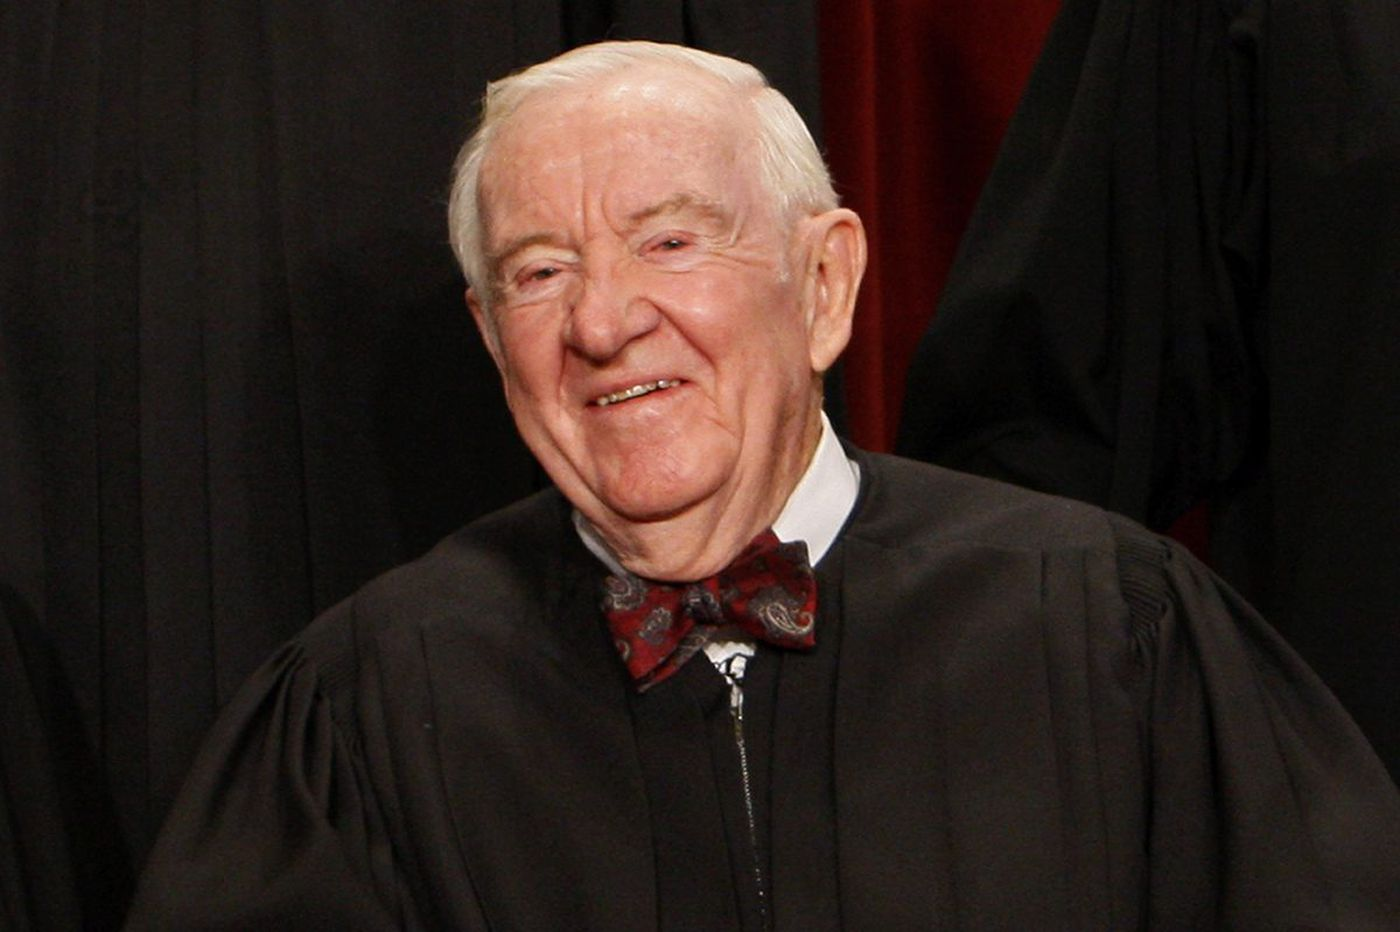 Retired Supreme Court Justice John Paul Stevens: 2nd Amendment a 'relic of the 18th century'